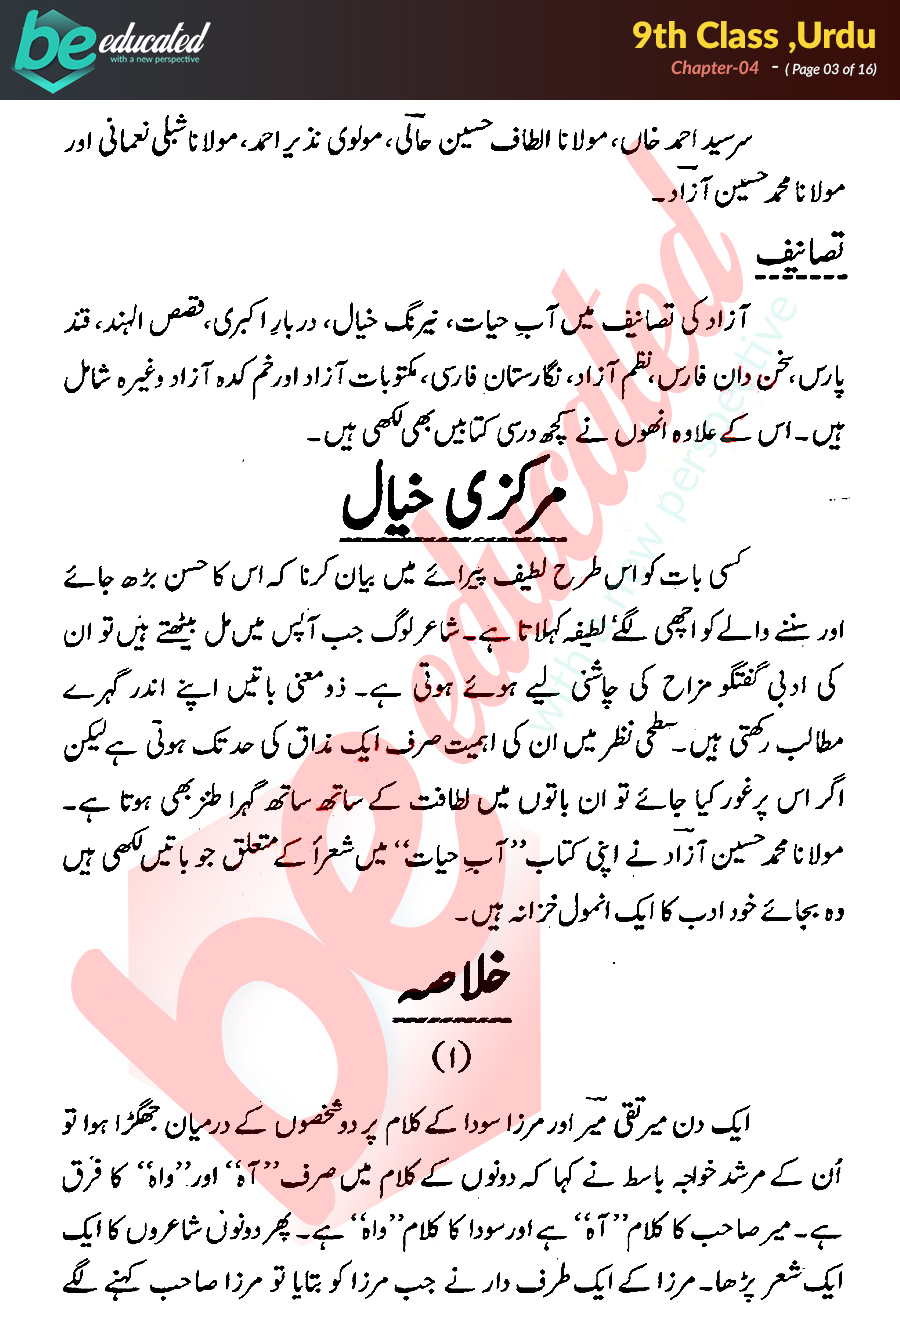 Chapter 4 Urdu 9th Class Notes - Matric Part 1 Notes